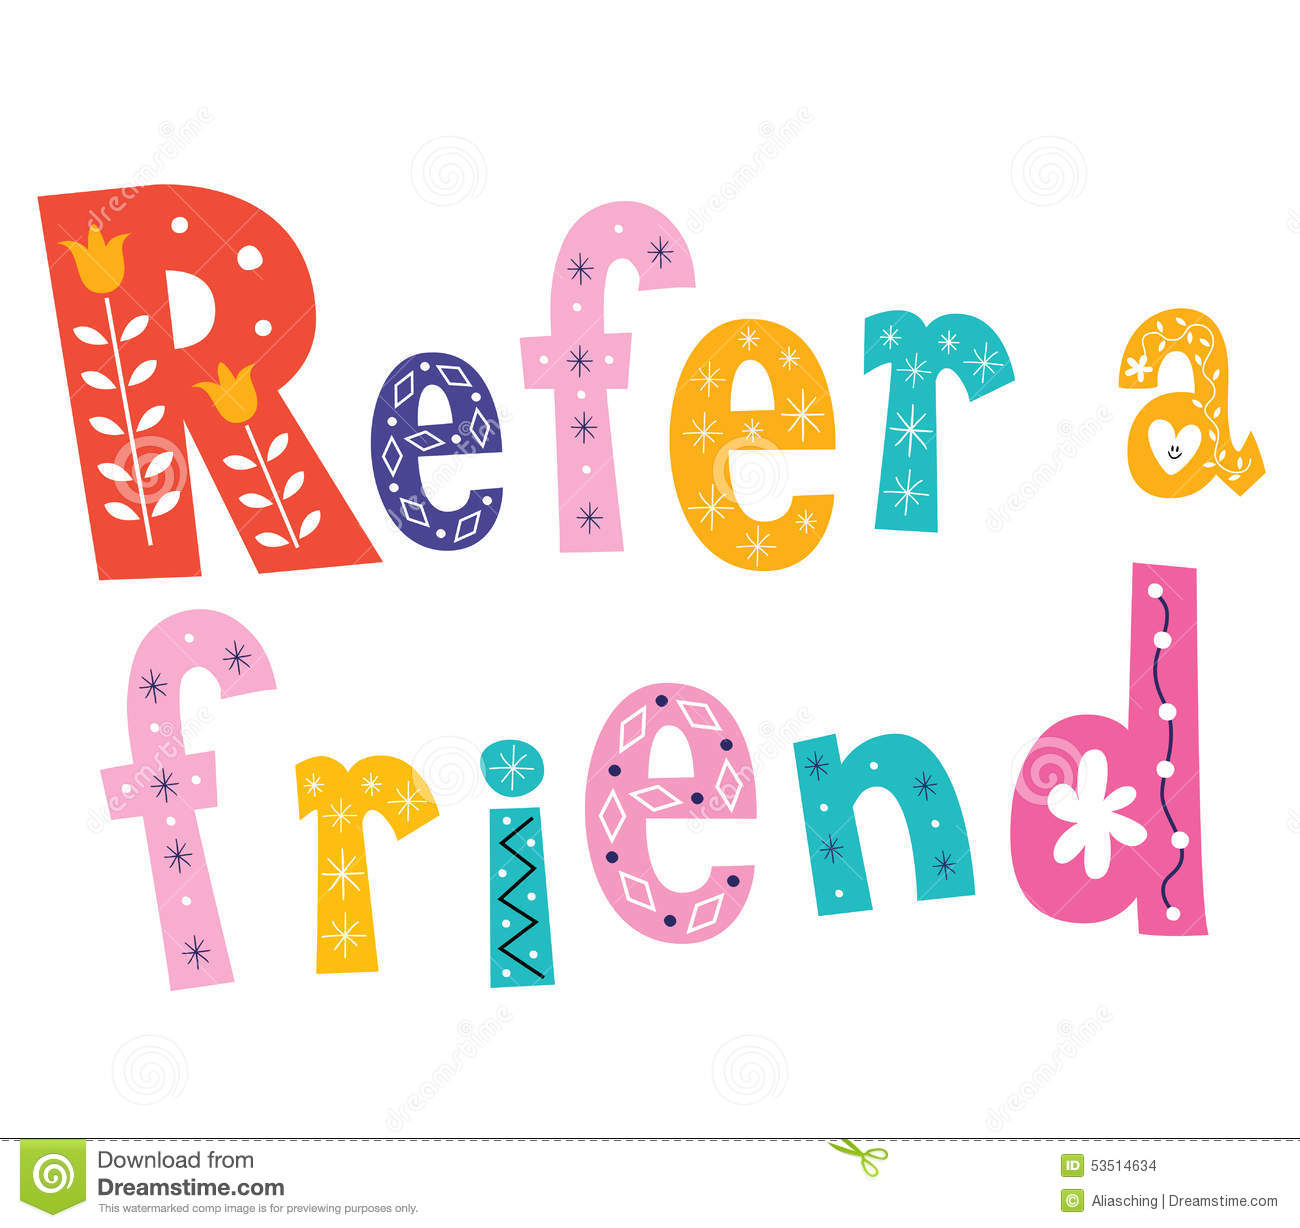 Refer Friend Brides Of The 101